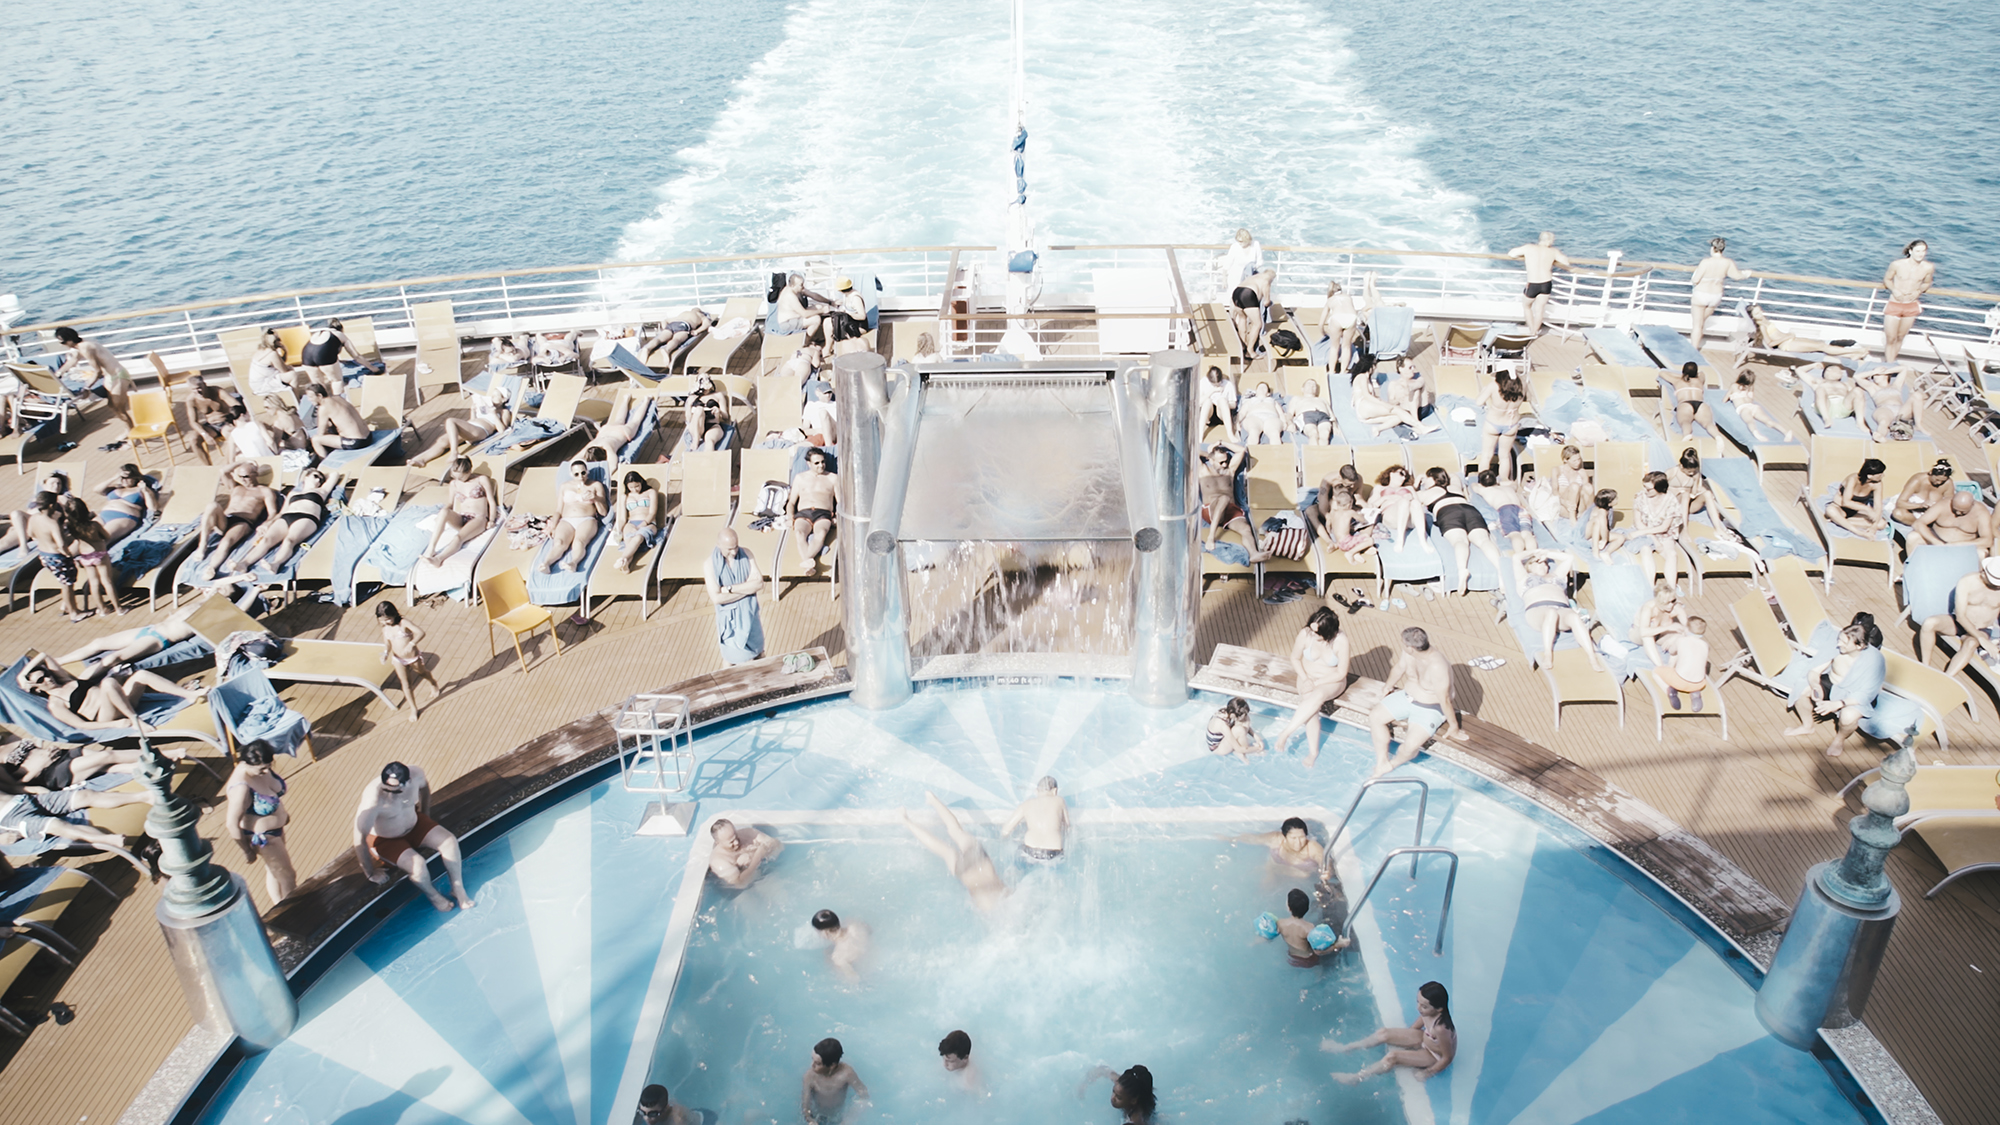 A cruise ship full of tourists in the short film All Inclusive